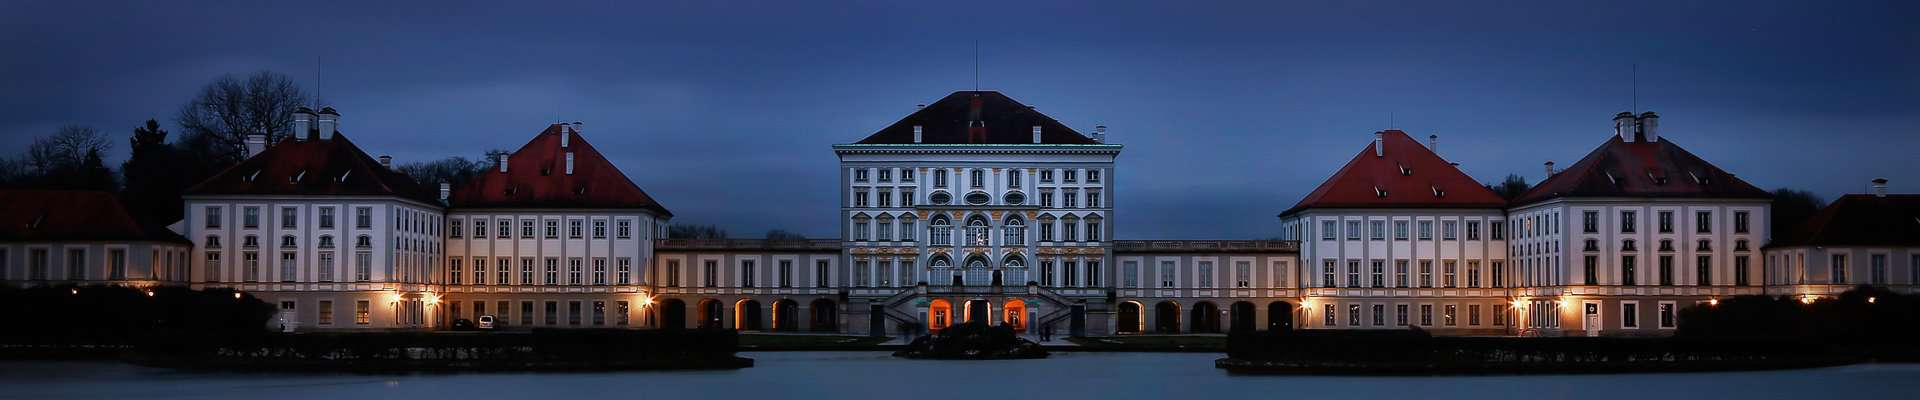 The Baroque Nymphenburg Palace in Munich at night.